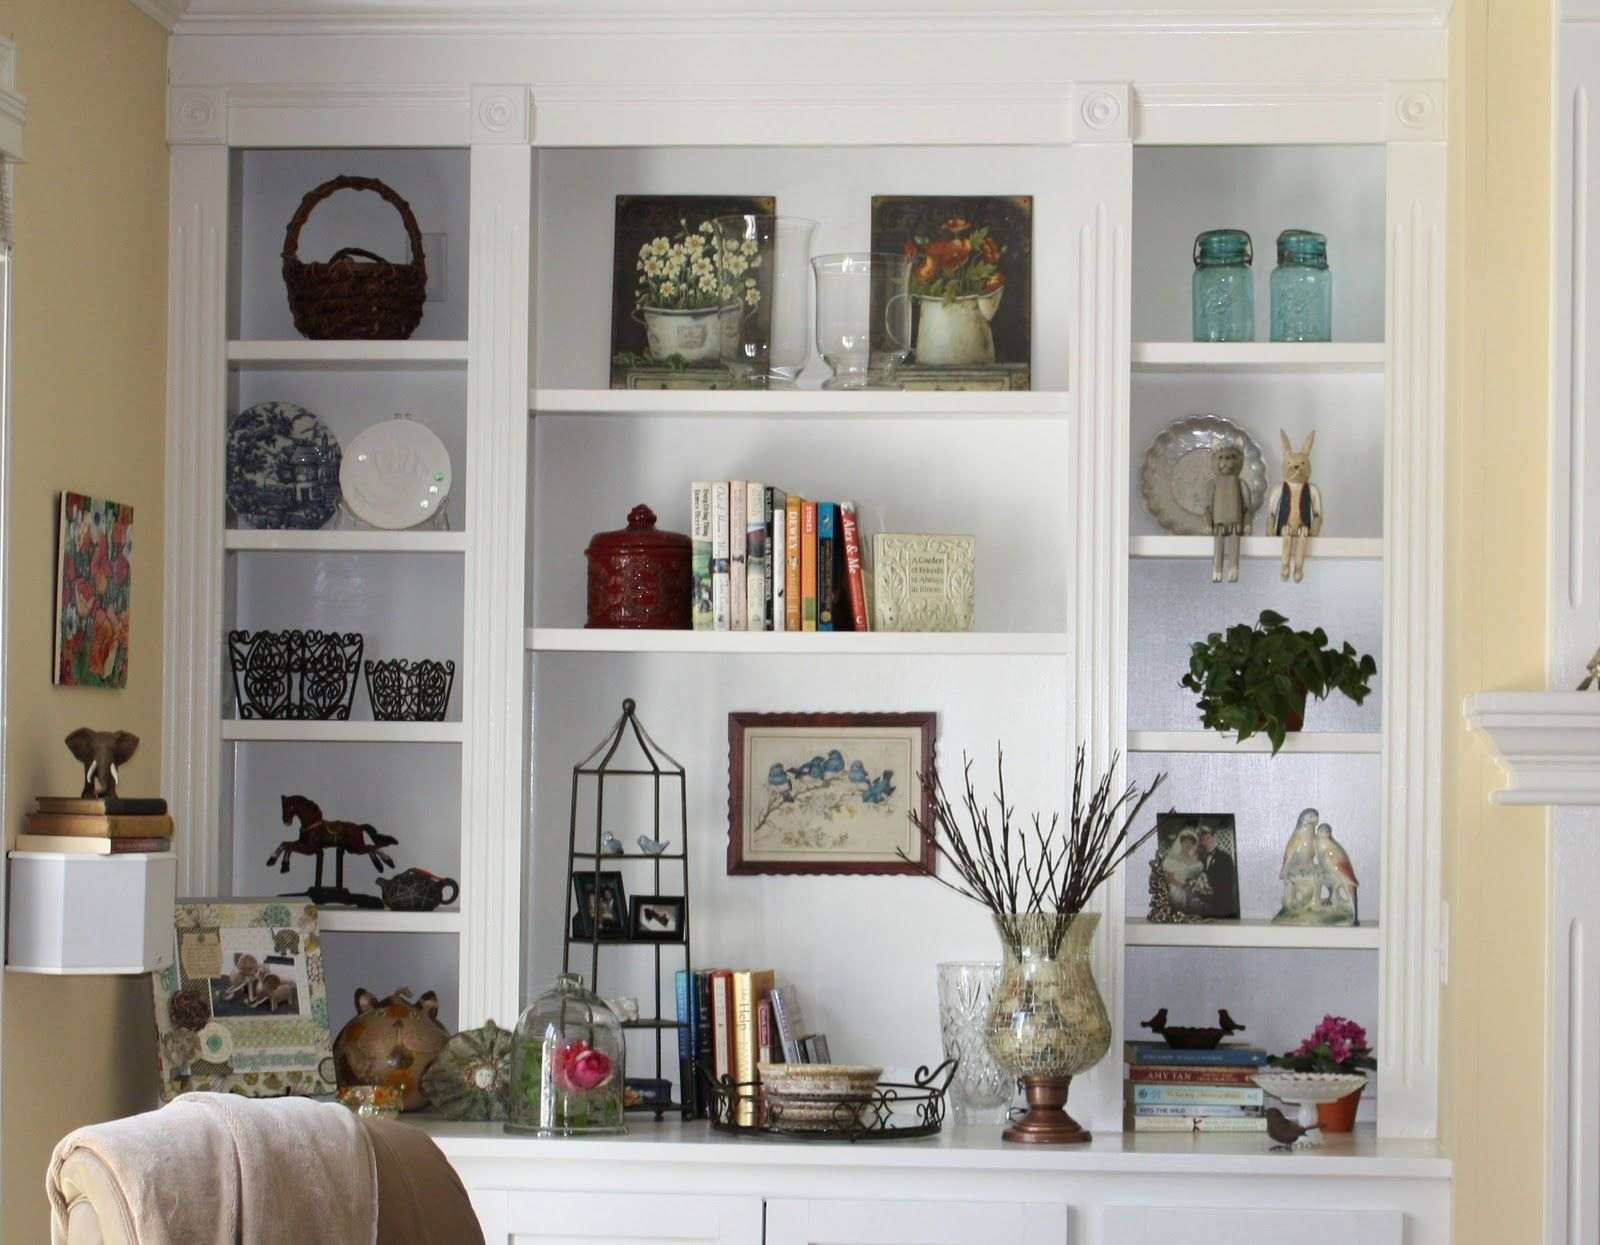 Inspirational Small Living Room. Shelving Units For Living Room: Small Living Room regarding Fresh Living Room Shelving